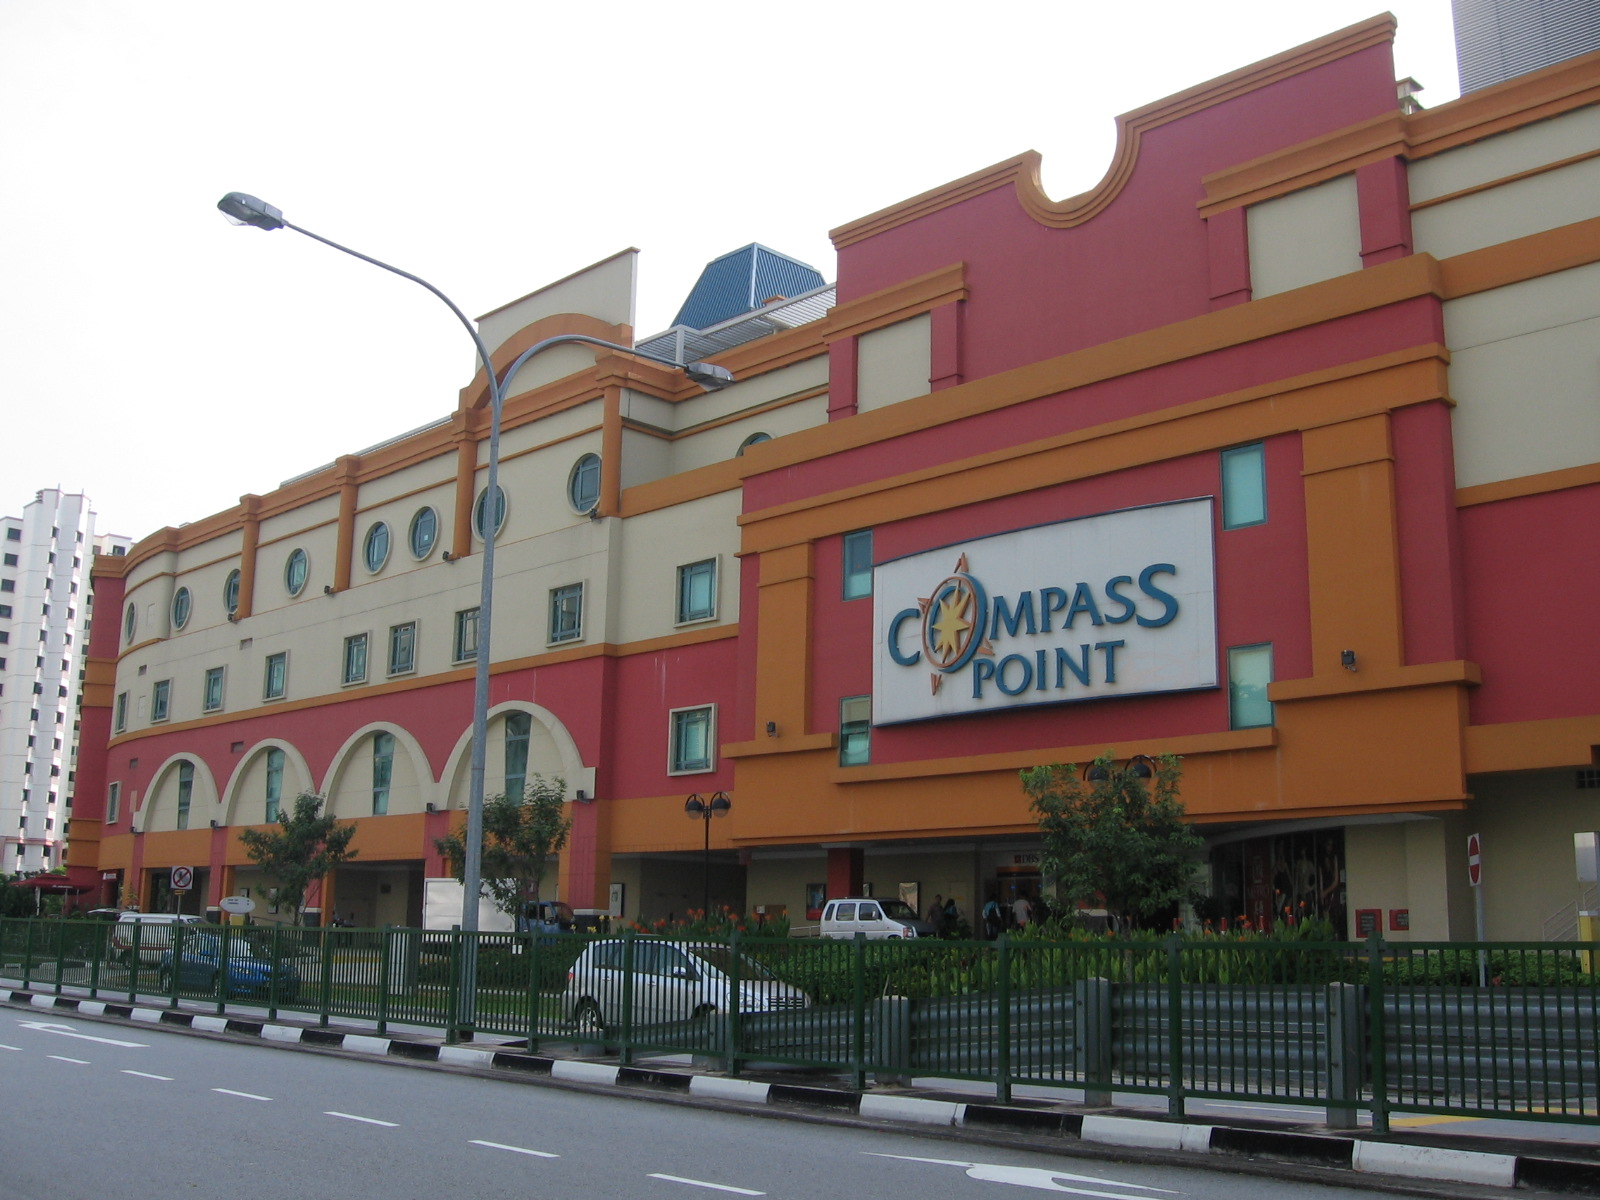 executive condo and compass point pic 1